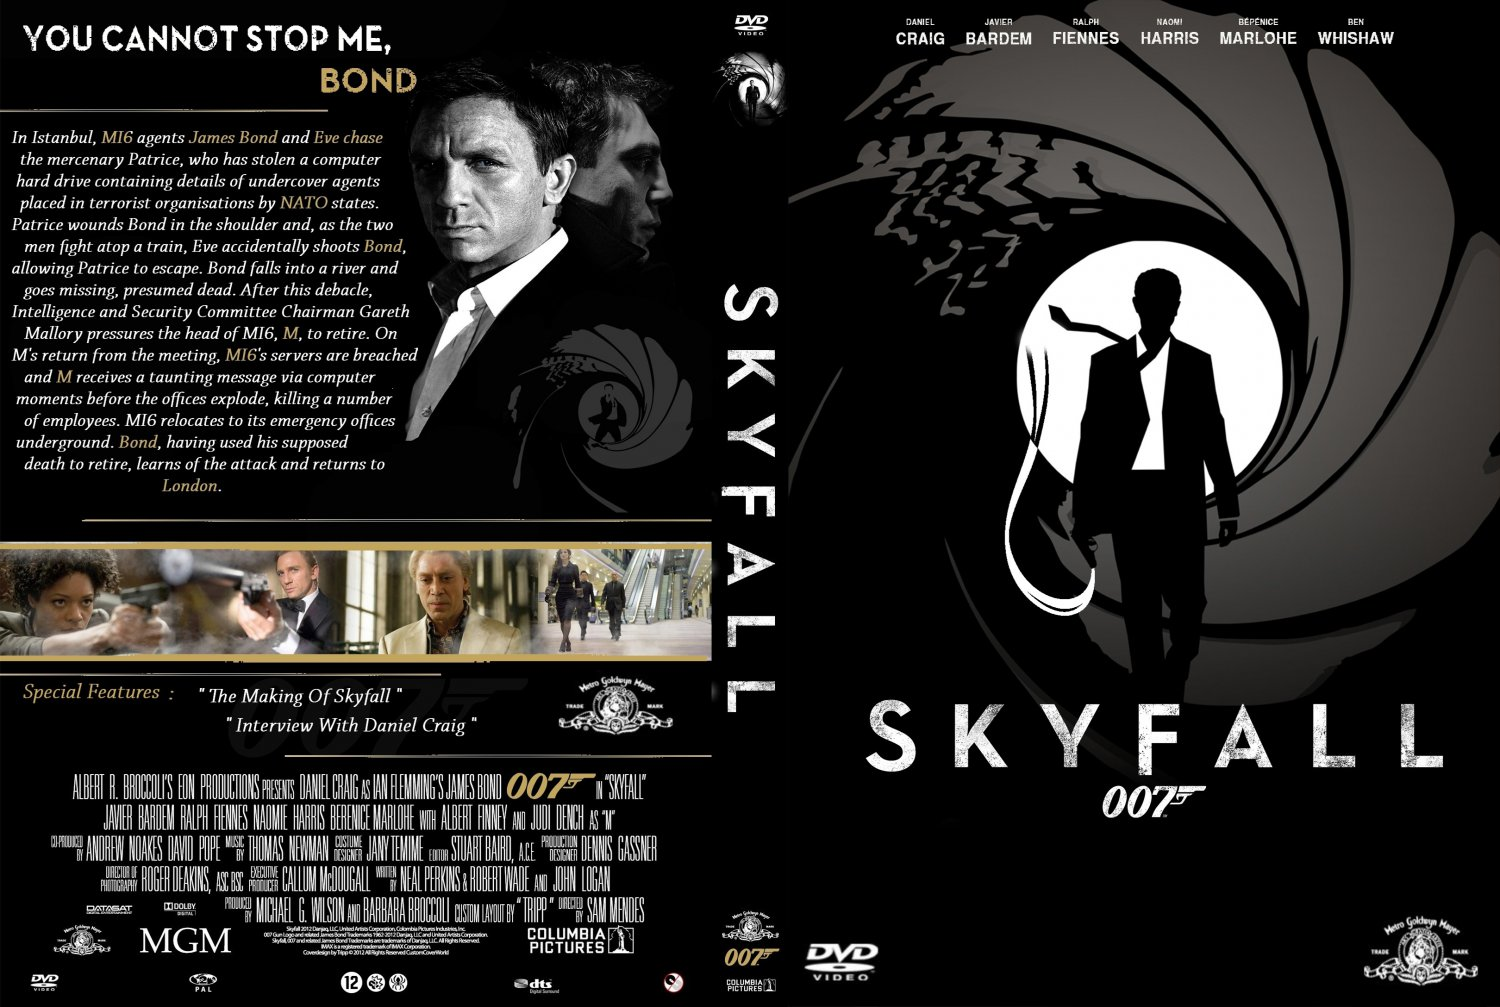 Pics Photos - 00...007 Skyfall Dvd Cover